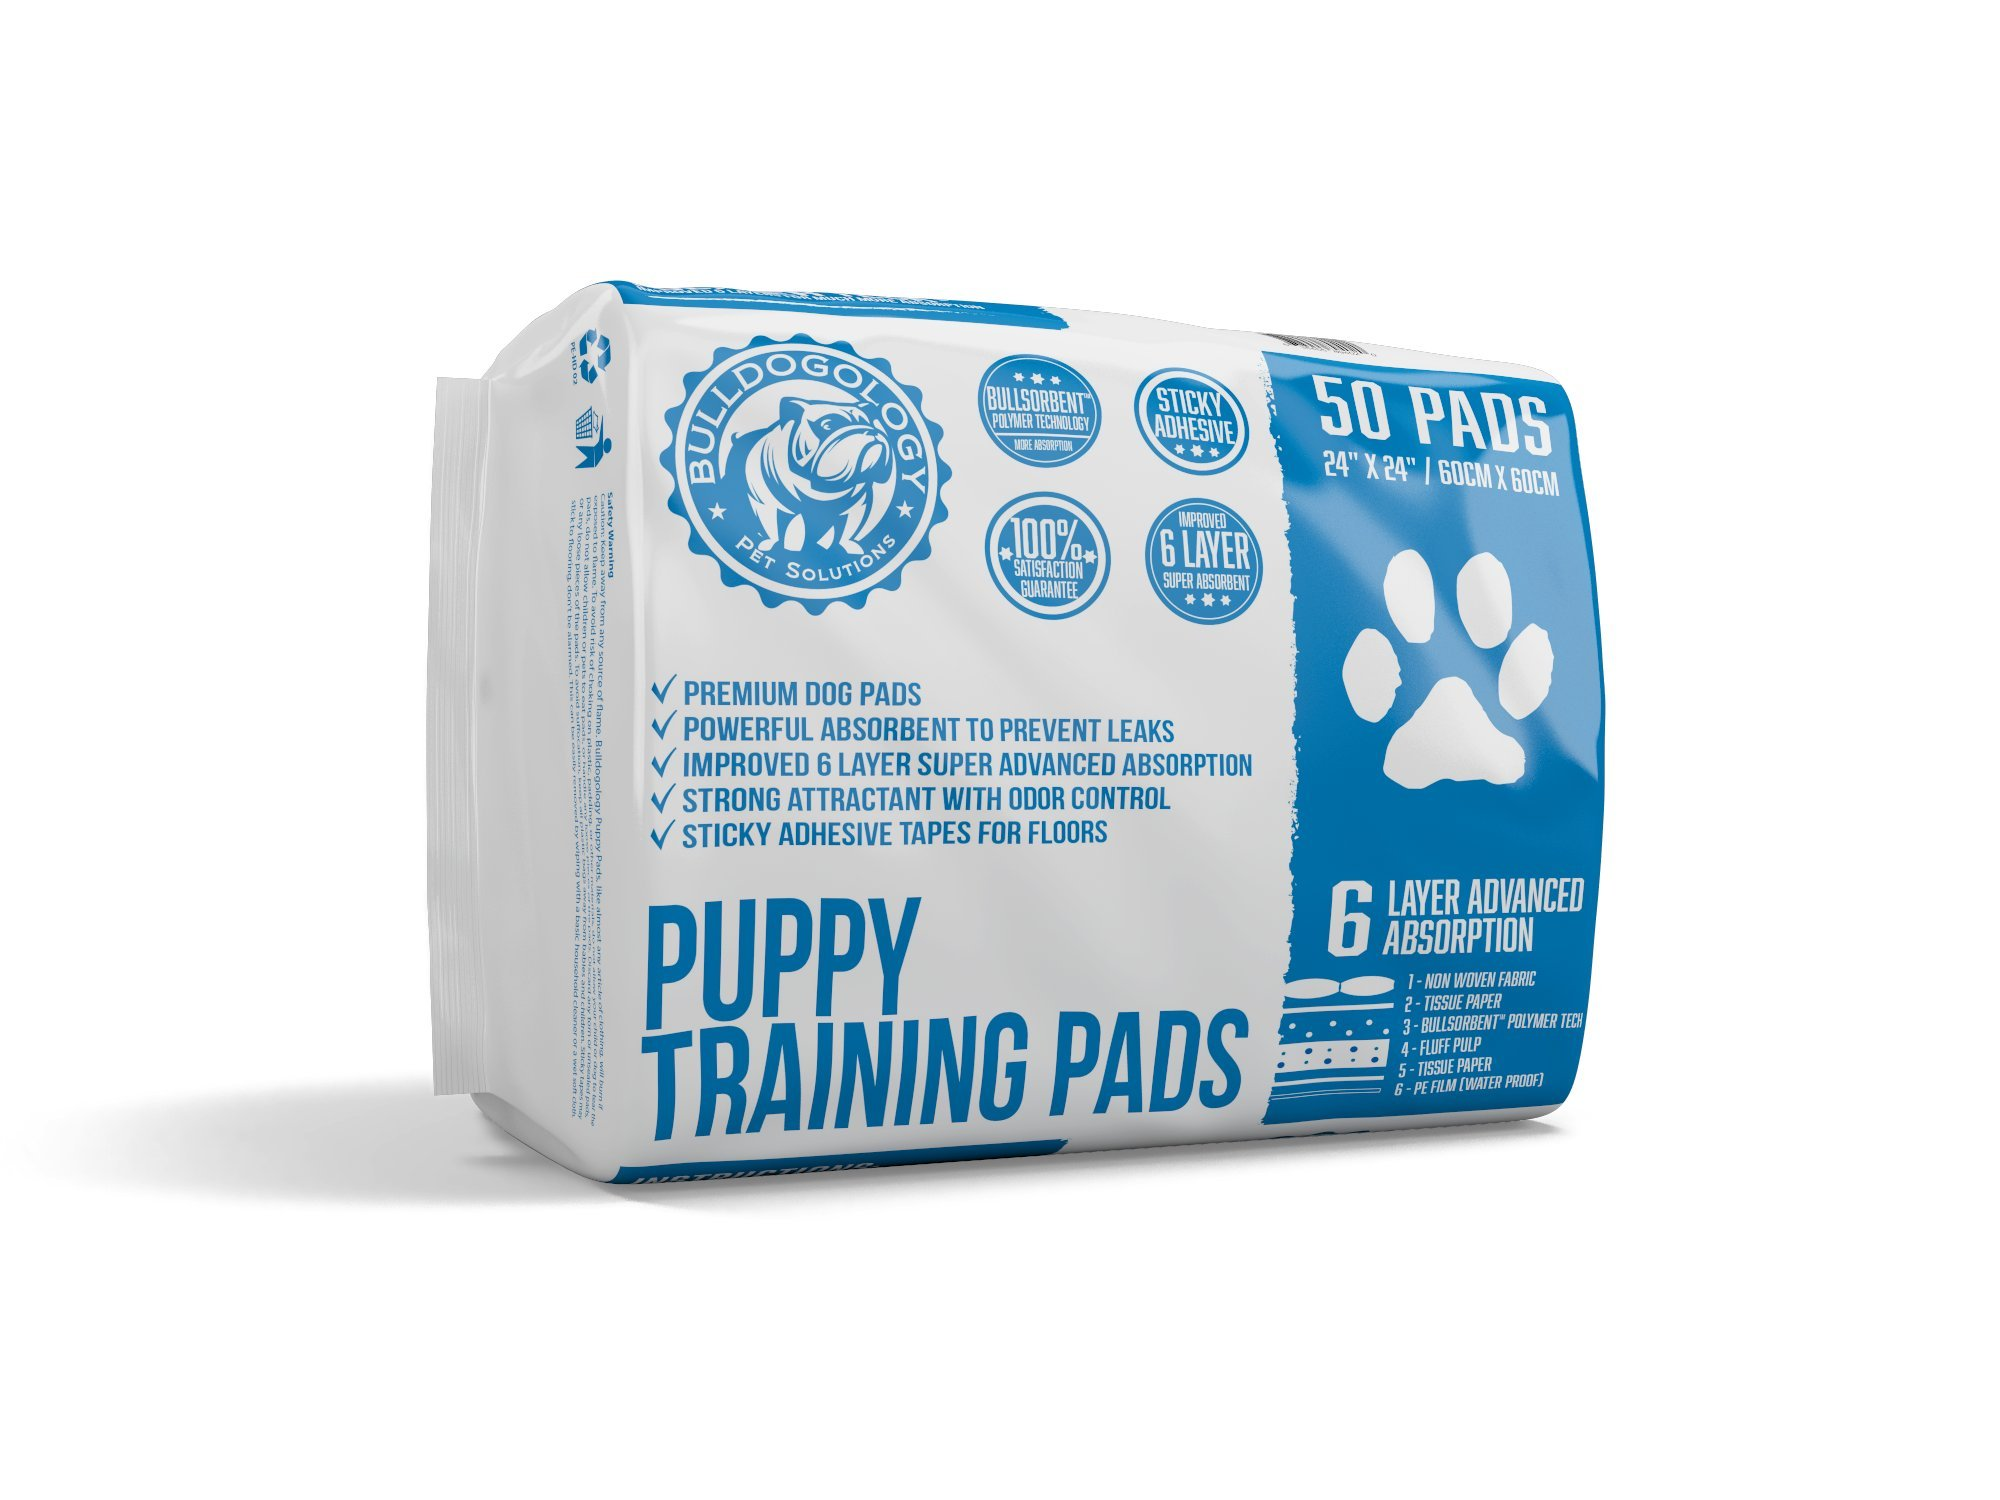 Bulldogology Premium Puppy Pee Pads with Adhesive Sticky Tape - Dog Training Wee Pads (24x24 Large, 50-Count)